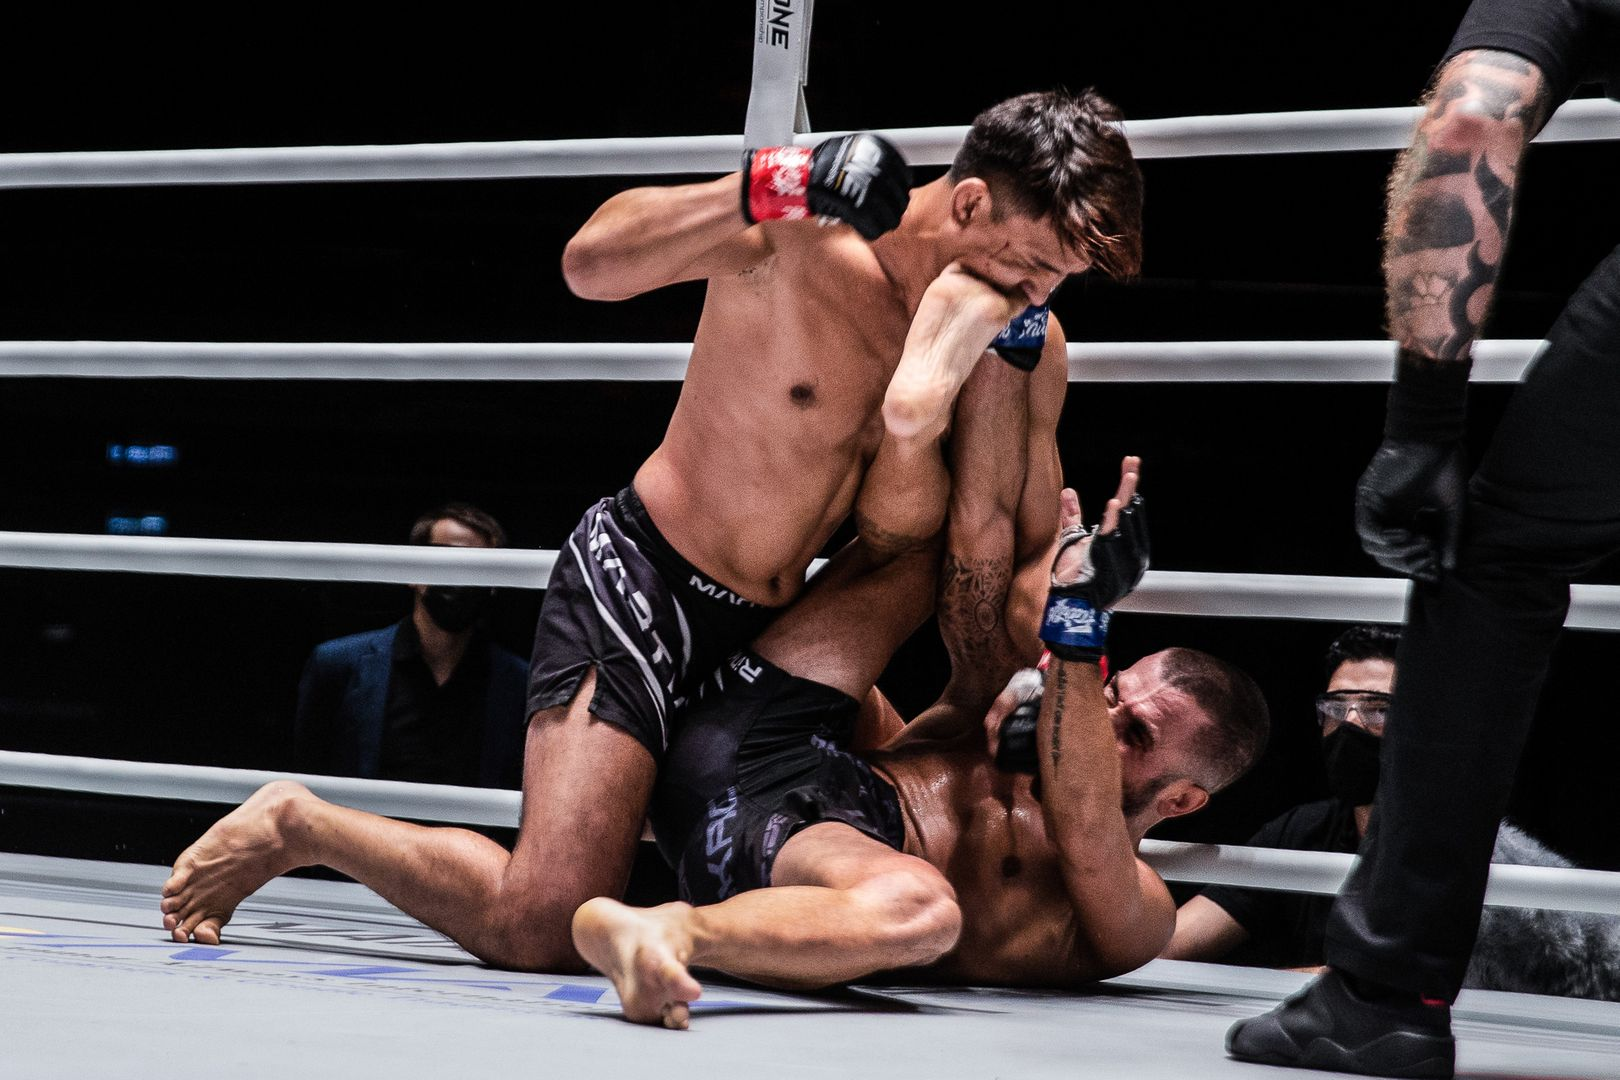 Thai mixed martial artist Shannon Wiratchai throws his ground and pound